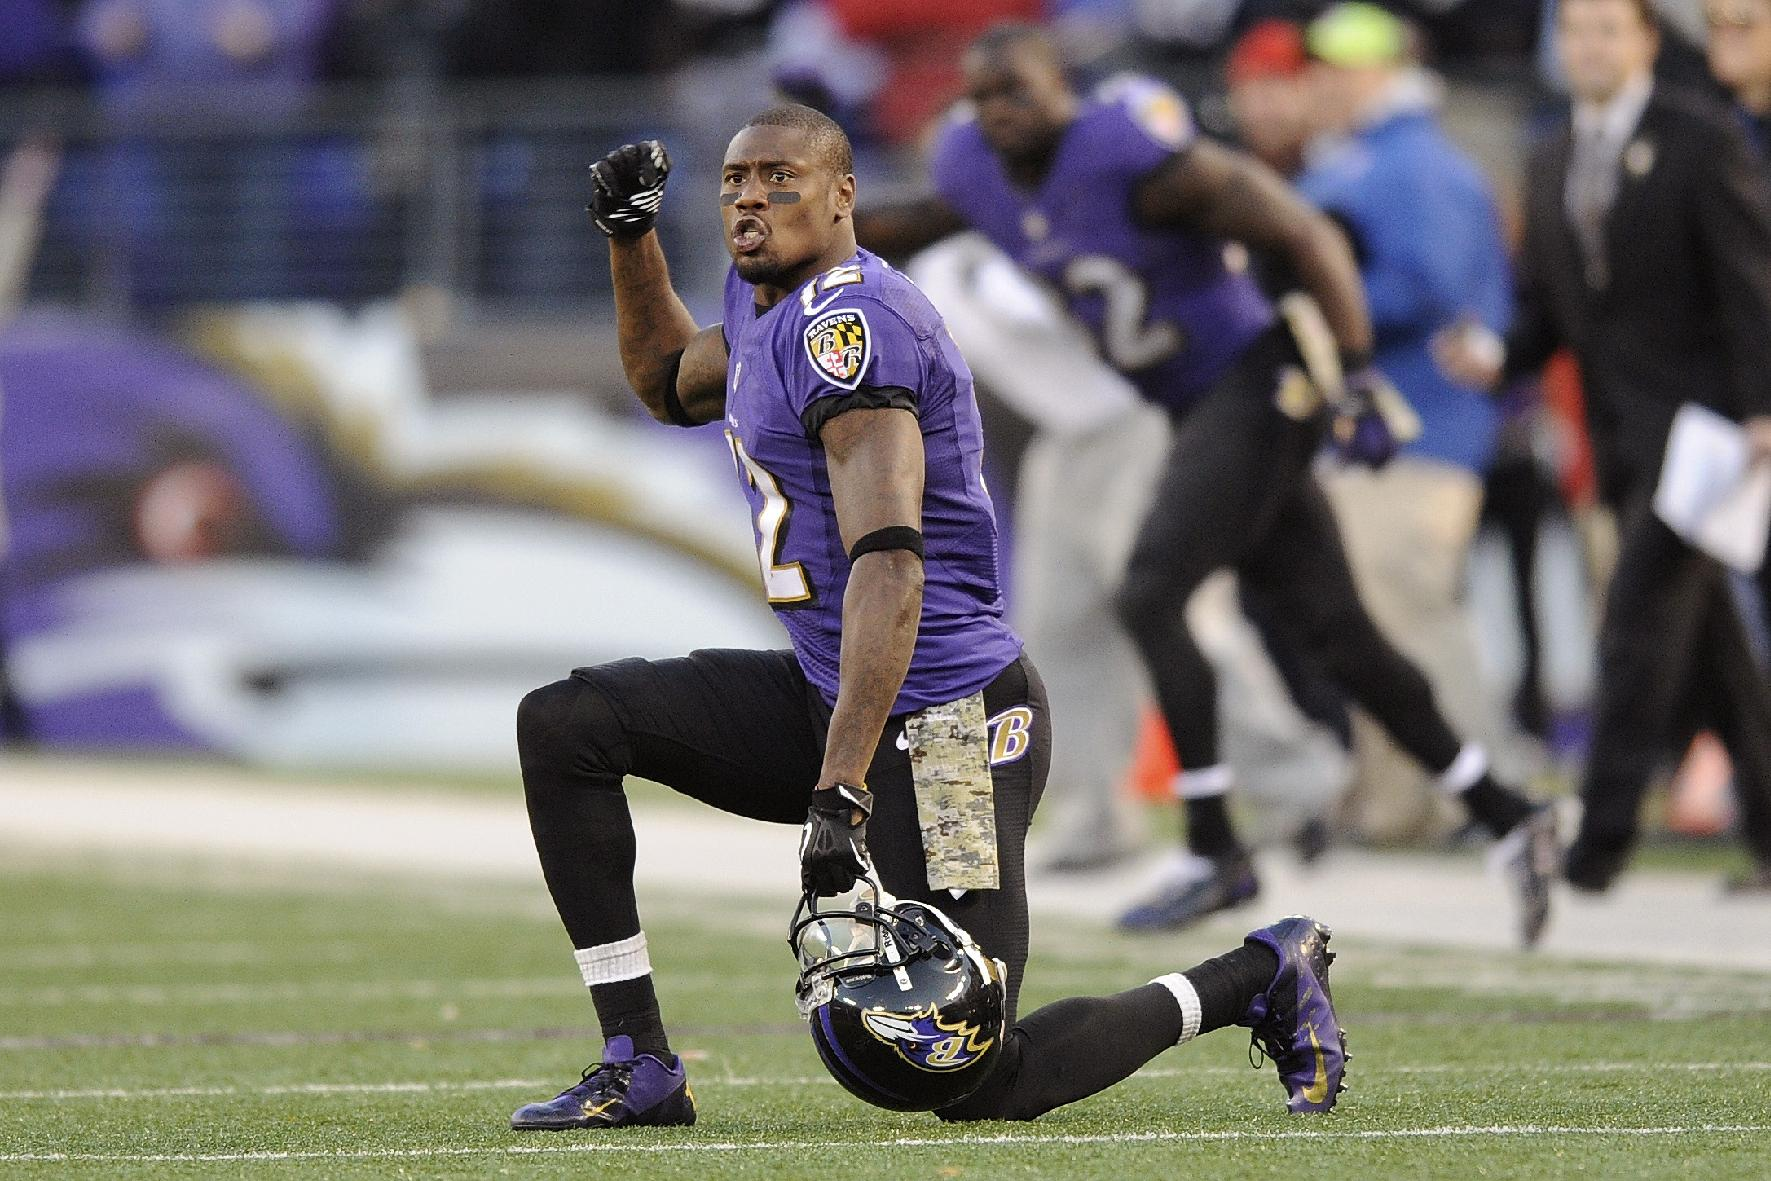 In this Nov. 10, 2013 file photo, Baltimore Ravens wide receiver Jacoby Jones cheers as Justin Tucker's kick clears the goalposts for a field goal giving the Ravens a 20-17 victory over the Cincinnati Bengals in overtime in a NFL football game in Baltimore. The Ravens and Jones agreed on a four-year contract Wednesday, March 12, 2014, after he drew interest from other teams as a free agent